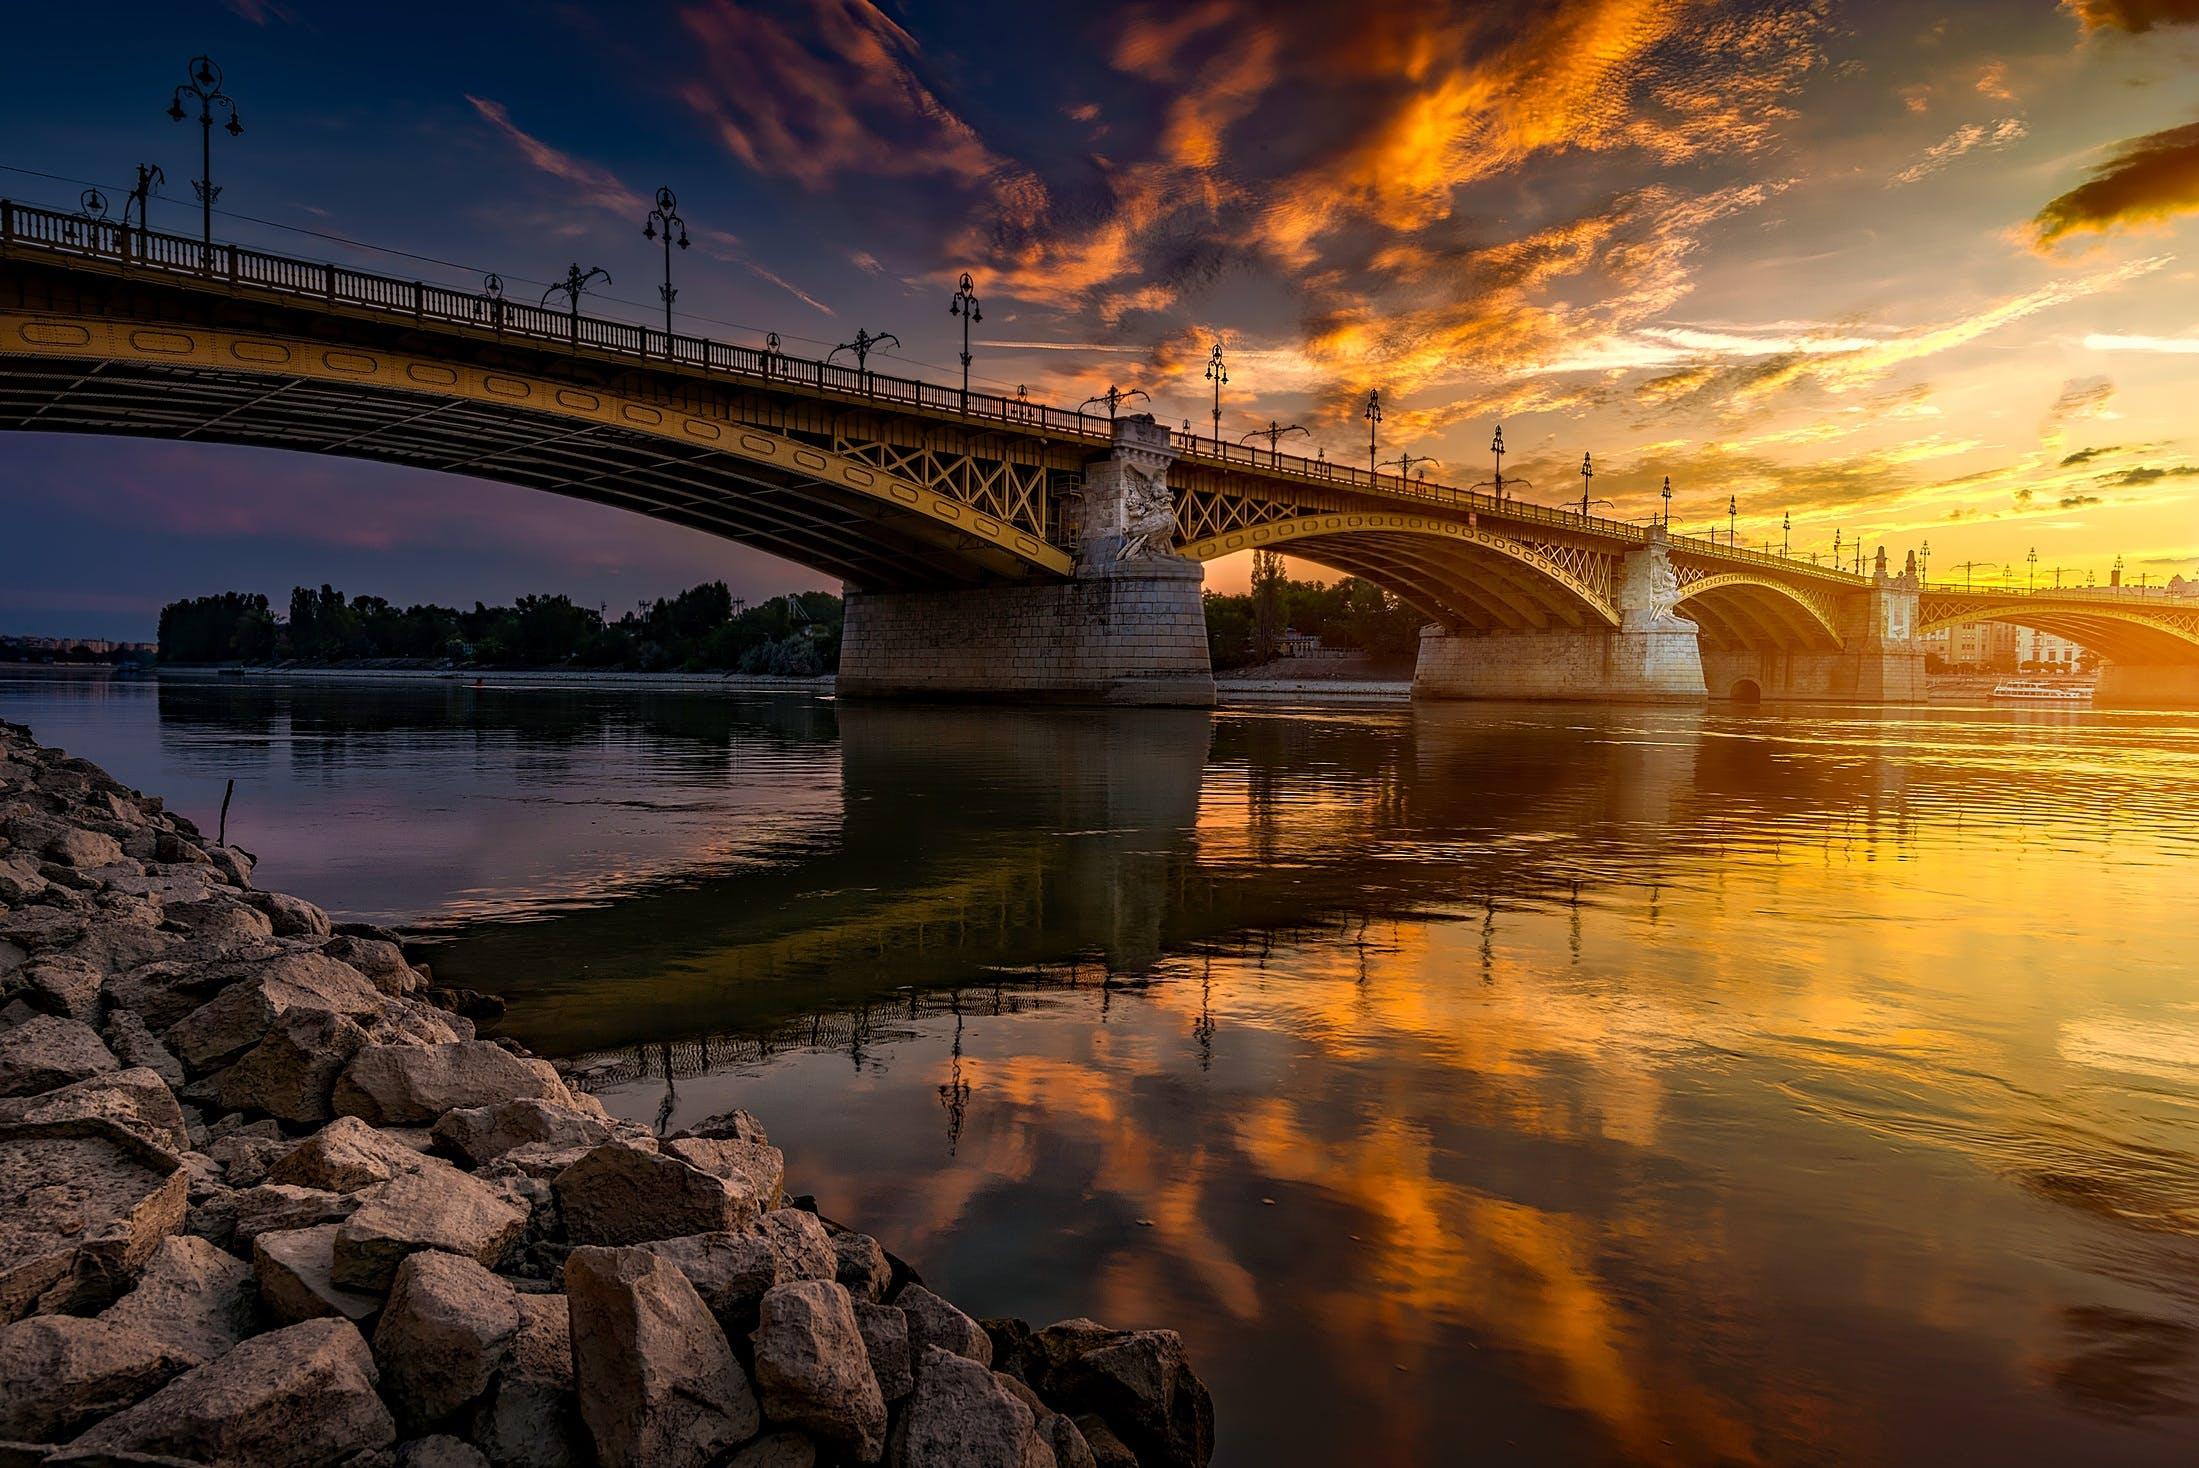 Low-angle Photography of Bridge on Body of Water during Golden Hour Photo